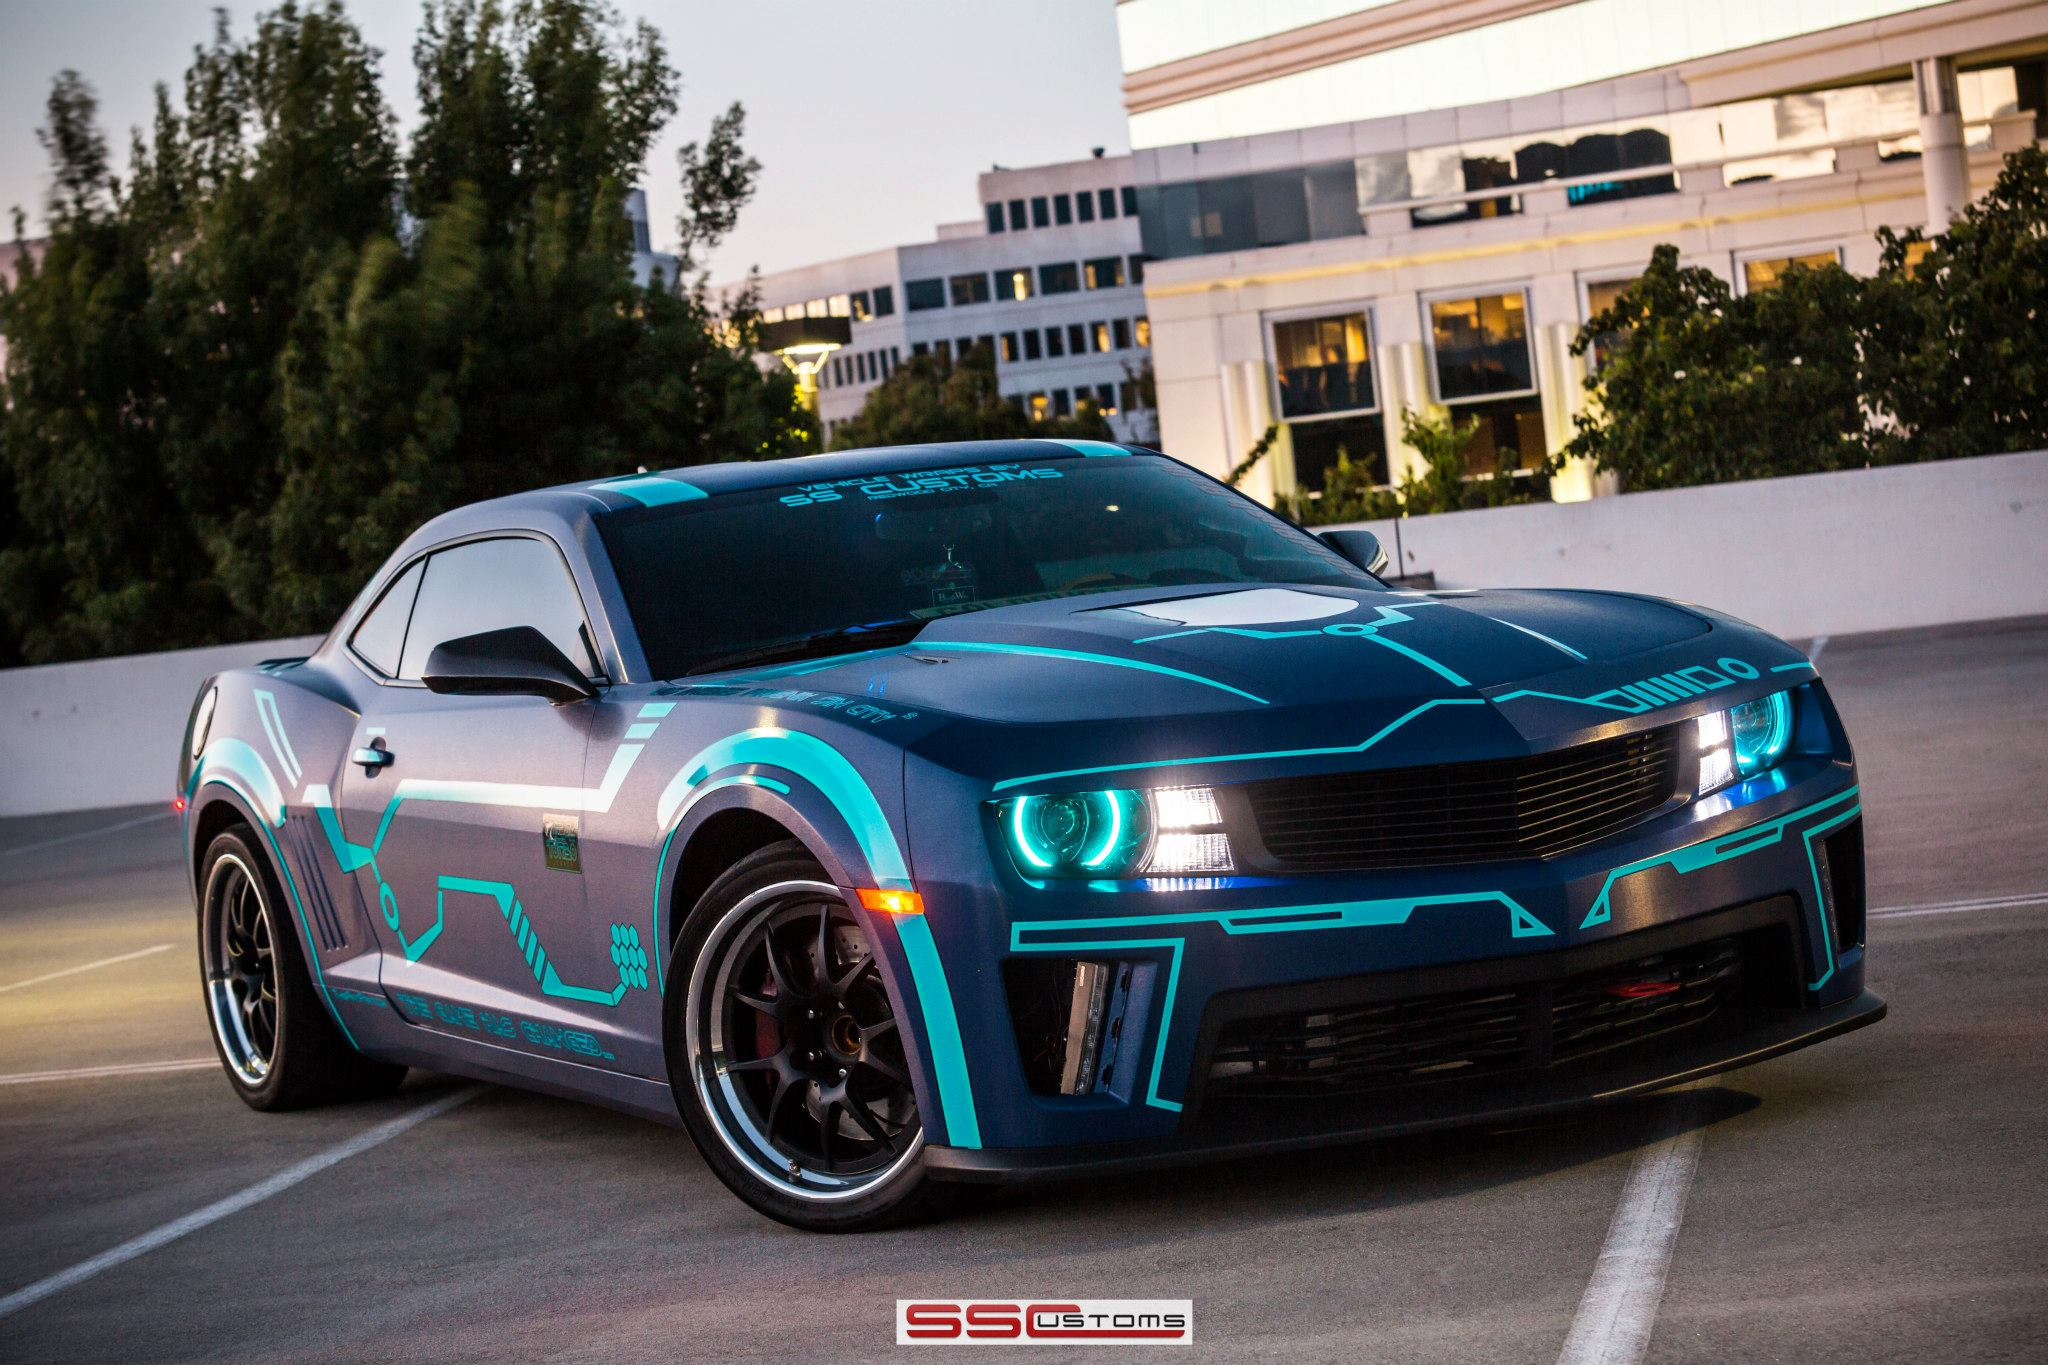 ss customs chevrolet camaro in a tron theme. Black Bedroom Furniture Sets. Home Design Ideas